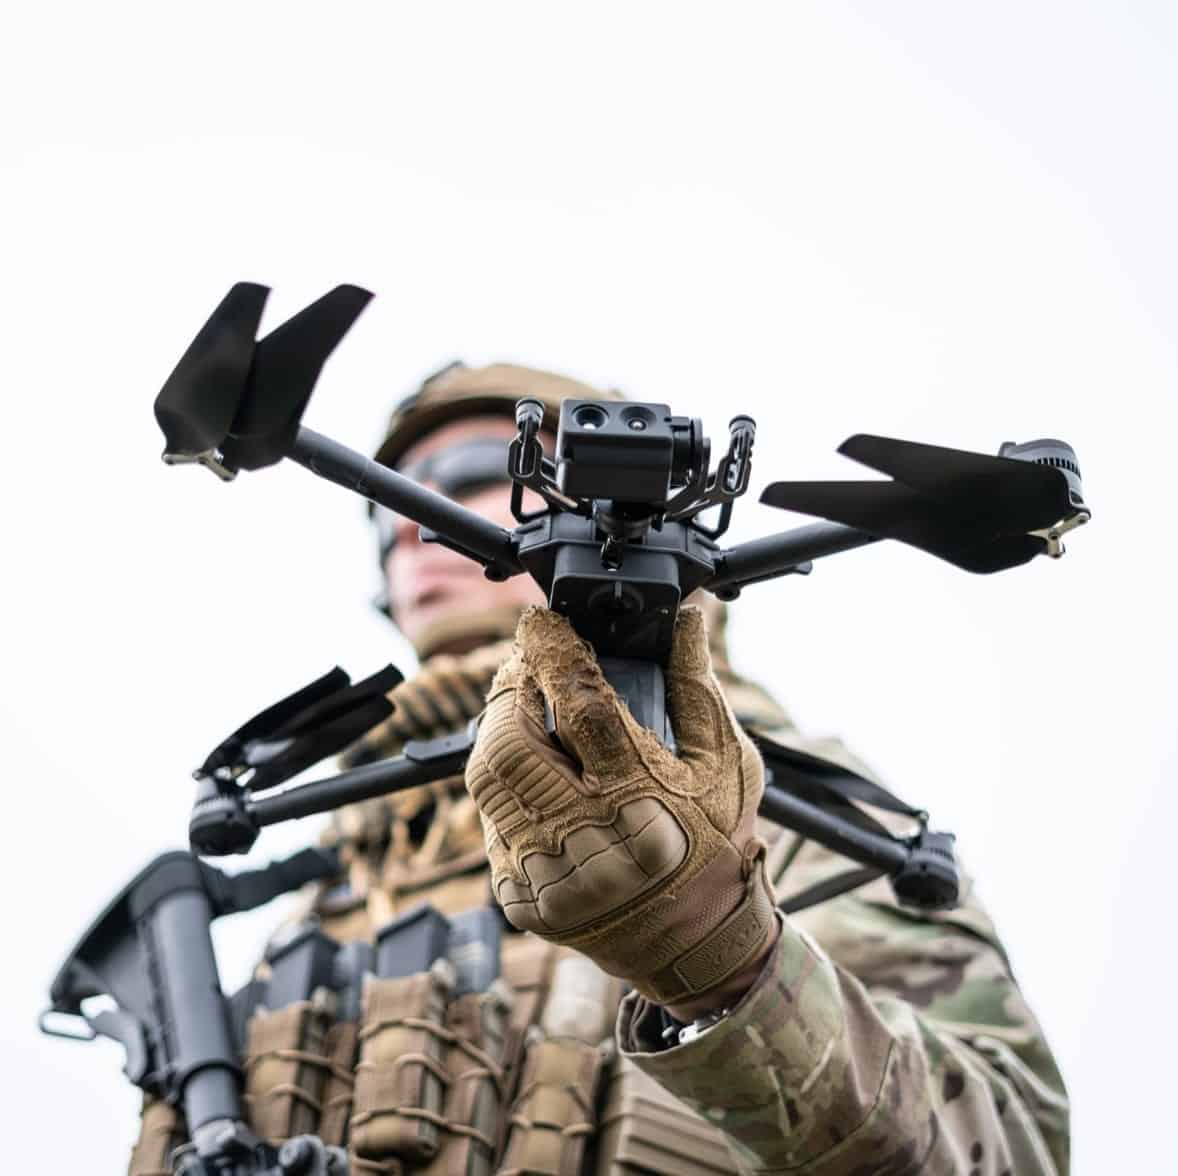 Only approved drones, so-called Blue sUAS are exempt from the PMB approval and reporting procedures, opening the door for the Department of the Interior to rebuild its drone fleet and start using it again for non-emergency missions.